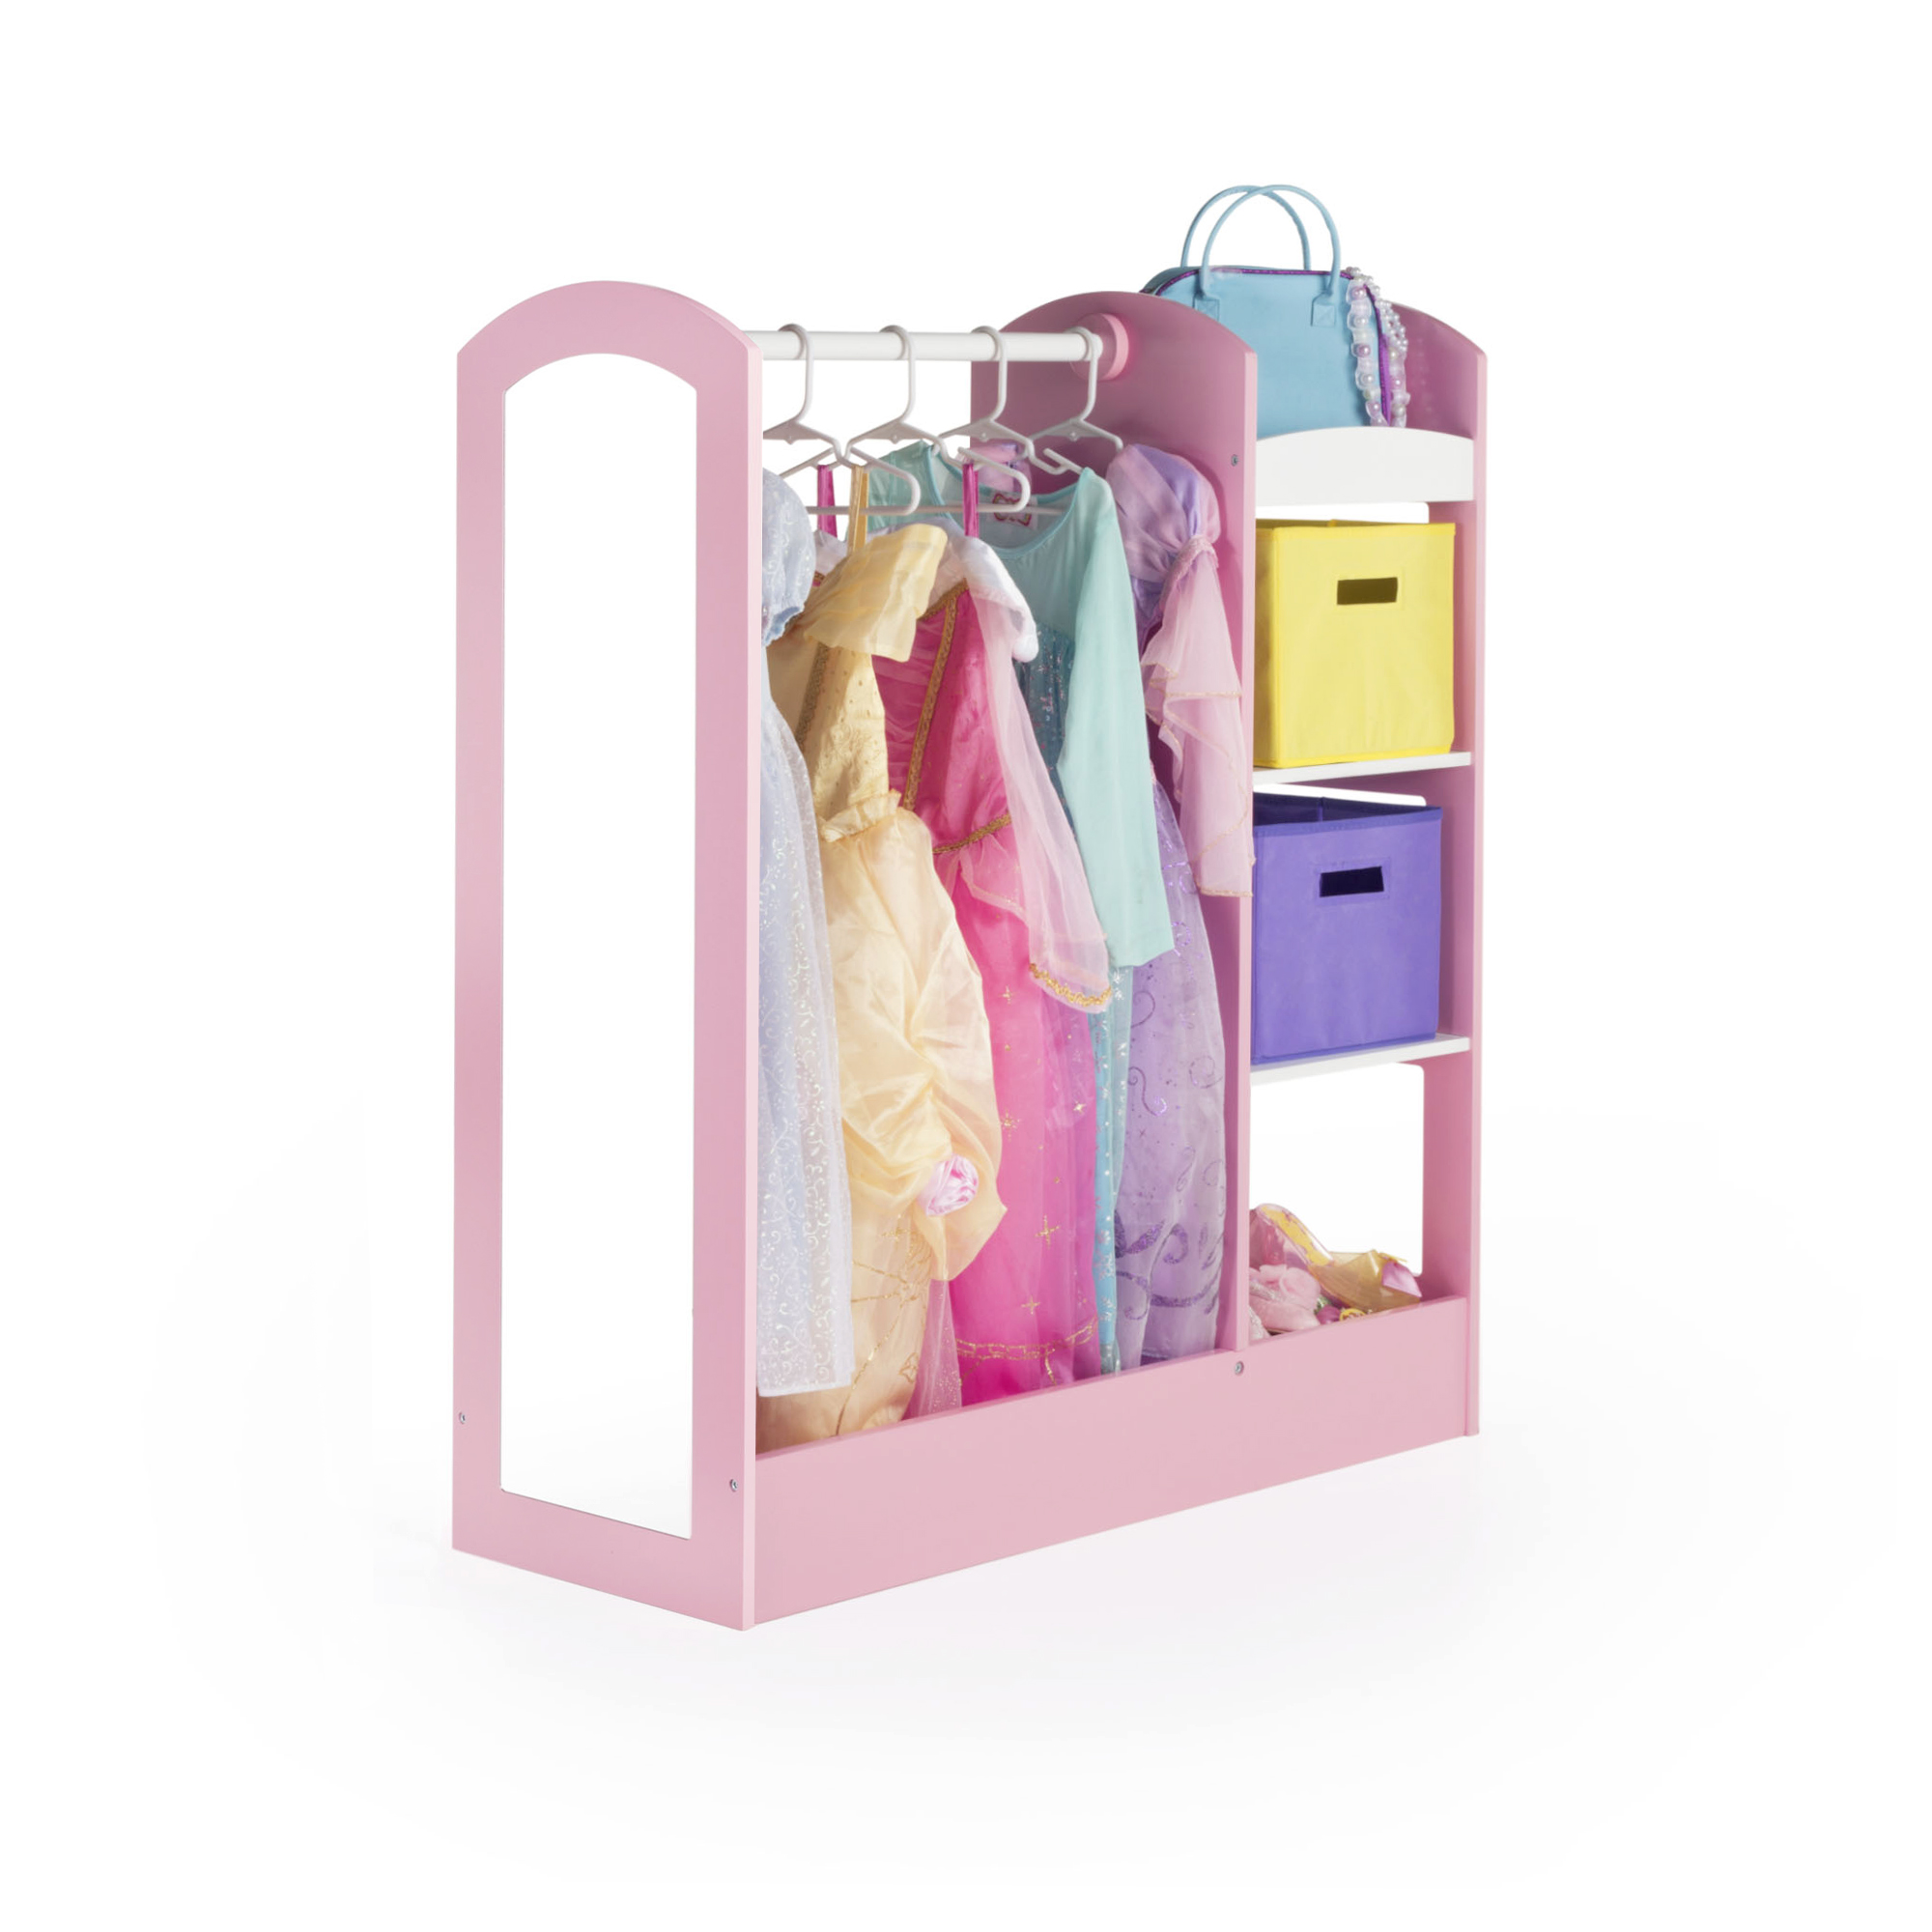 See and Store Dress-Up Center - Pastel